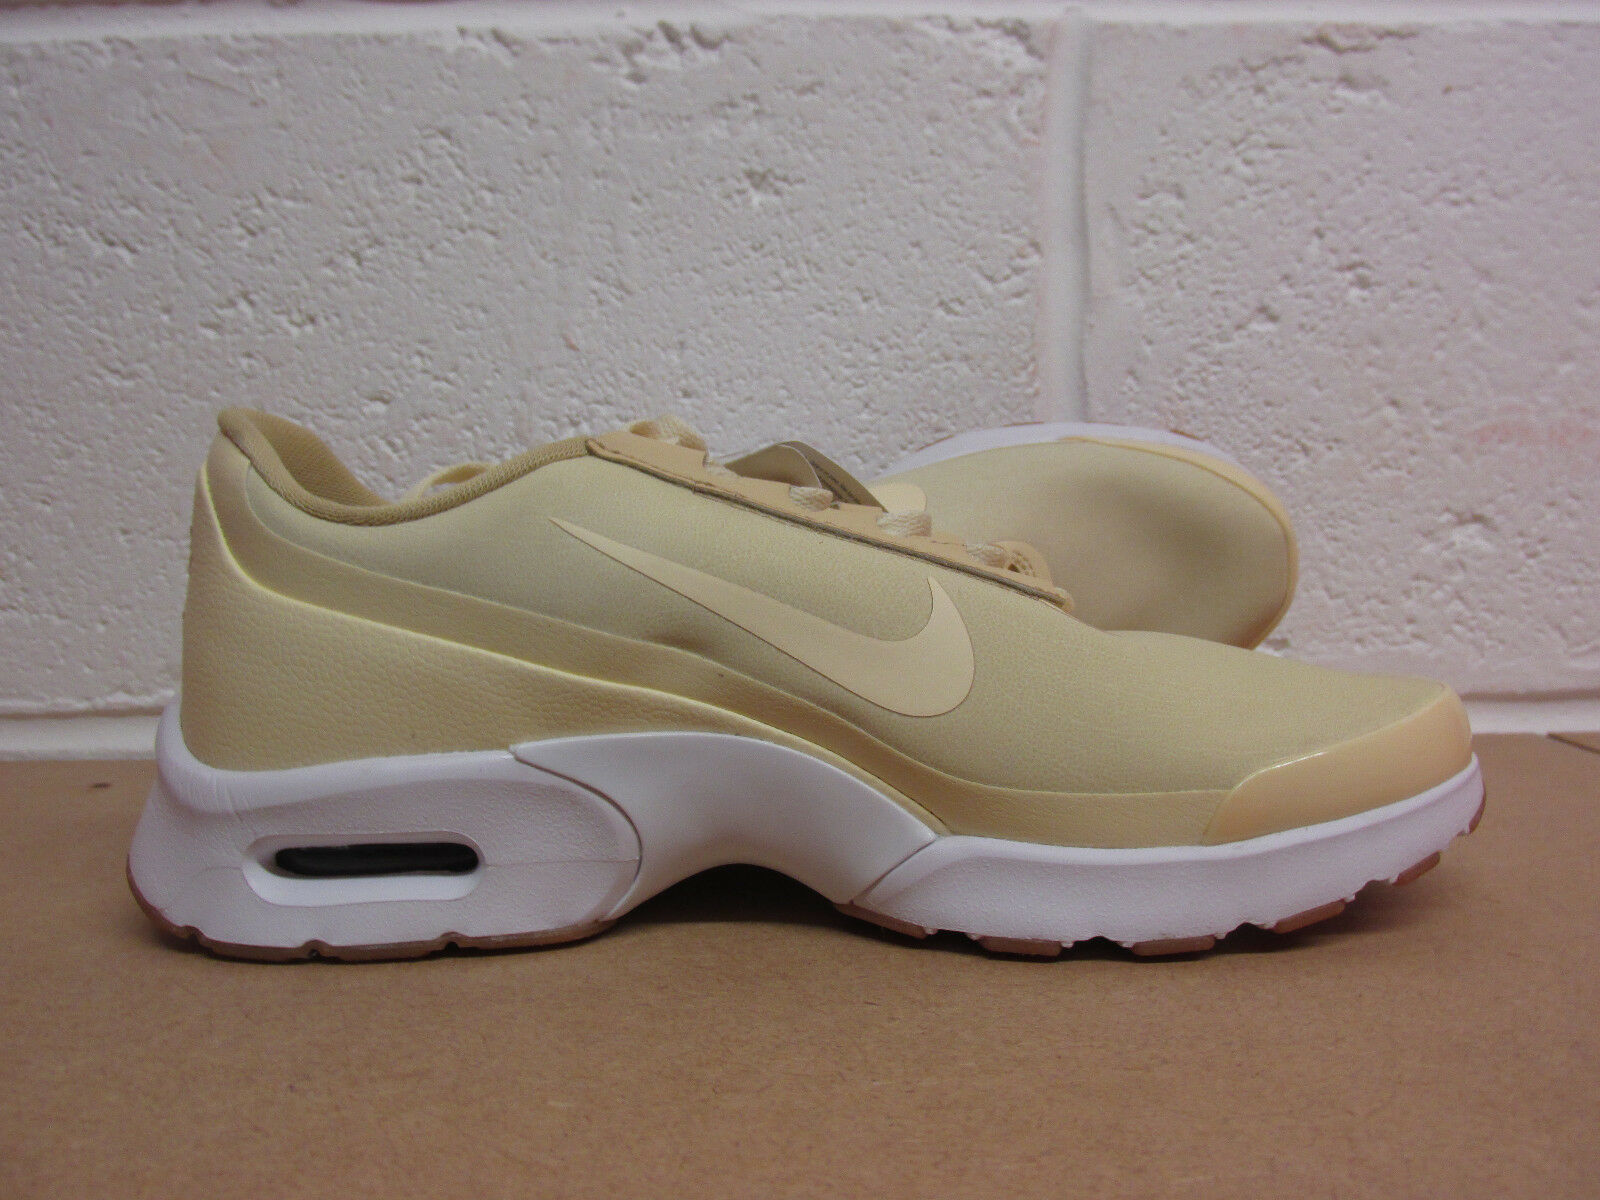 Nike air max jewell 896195 100 womens trainers sneakers shoes SAMPLE